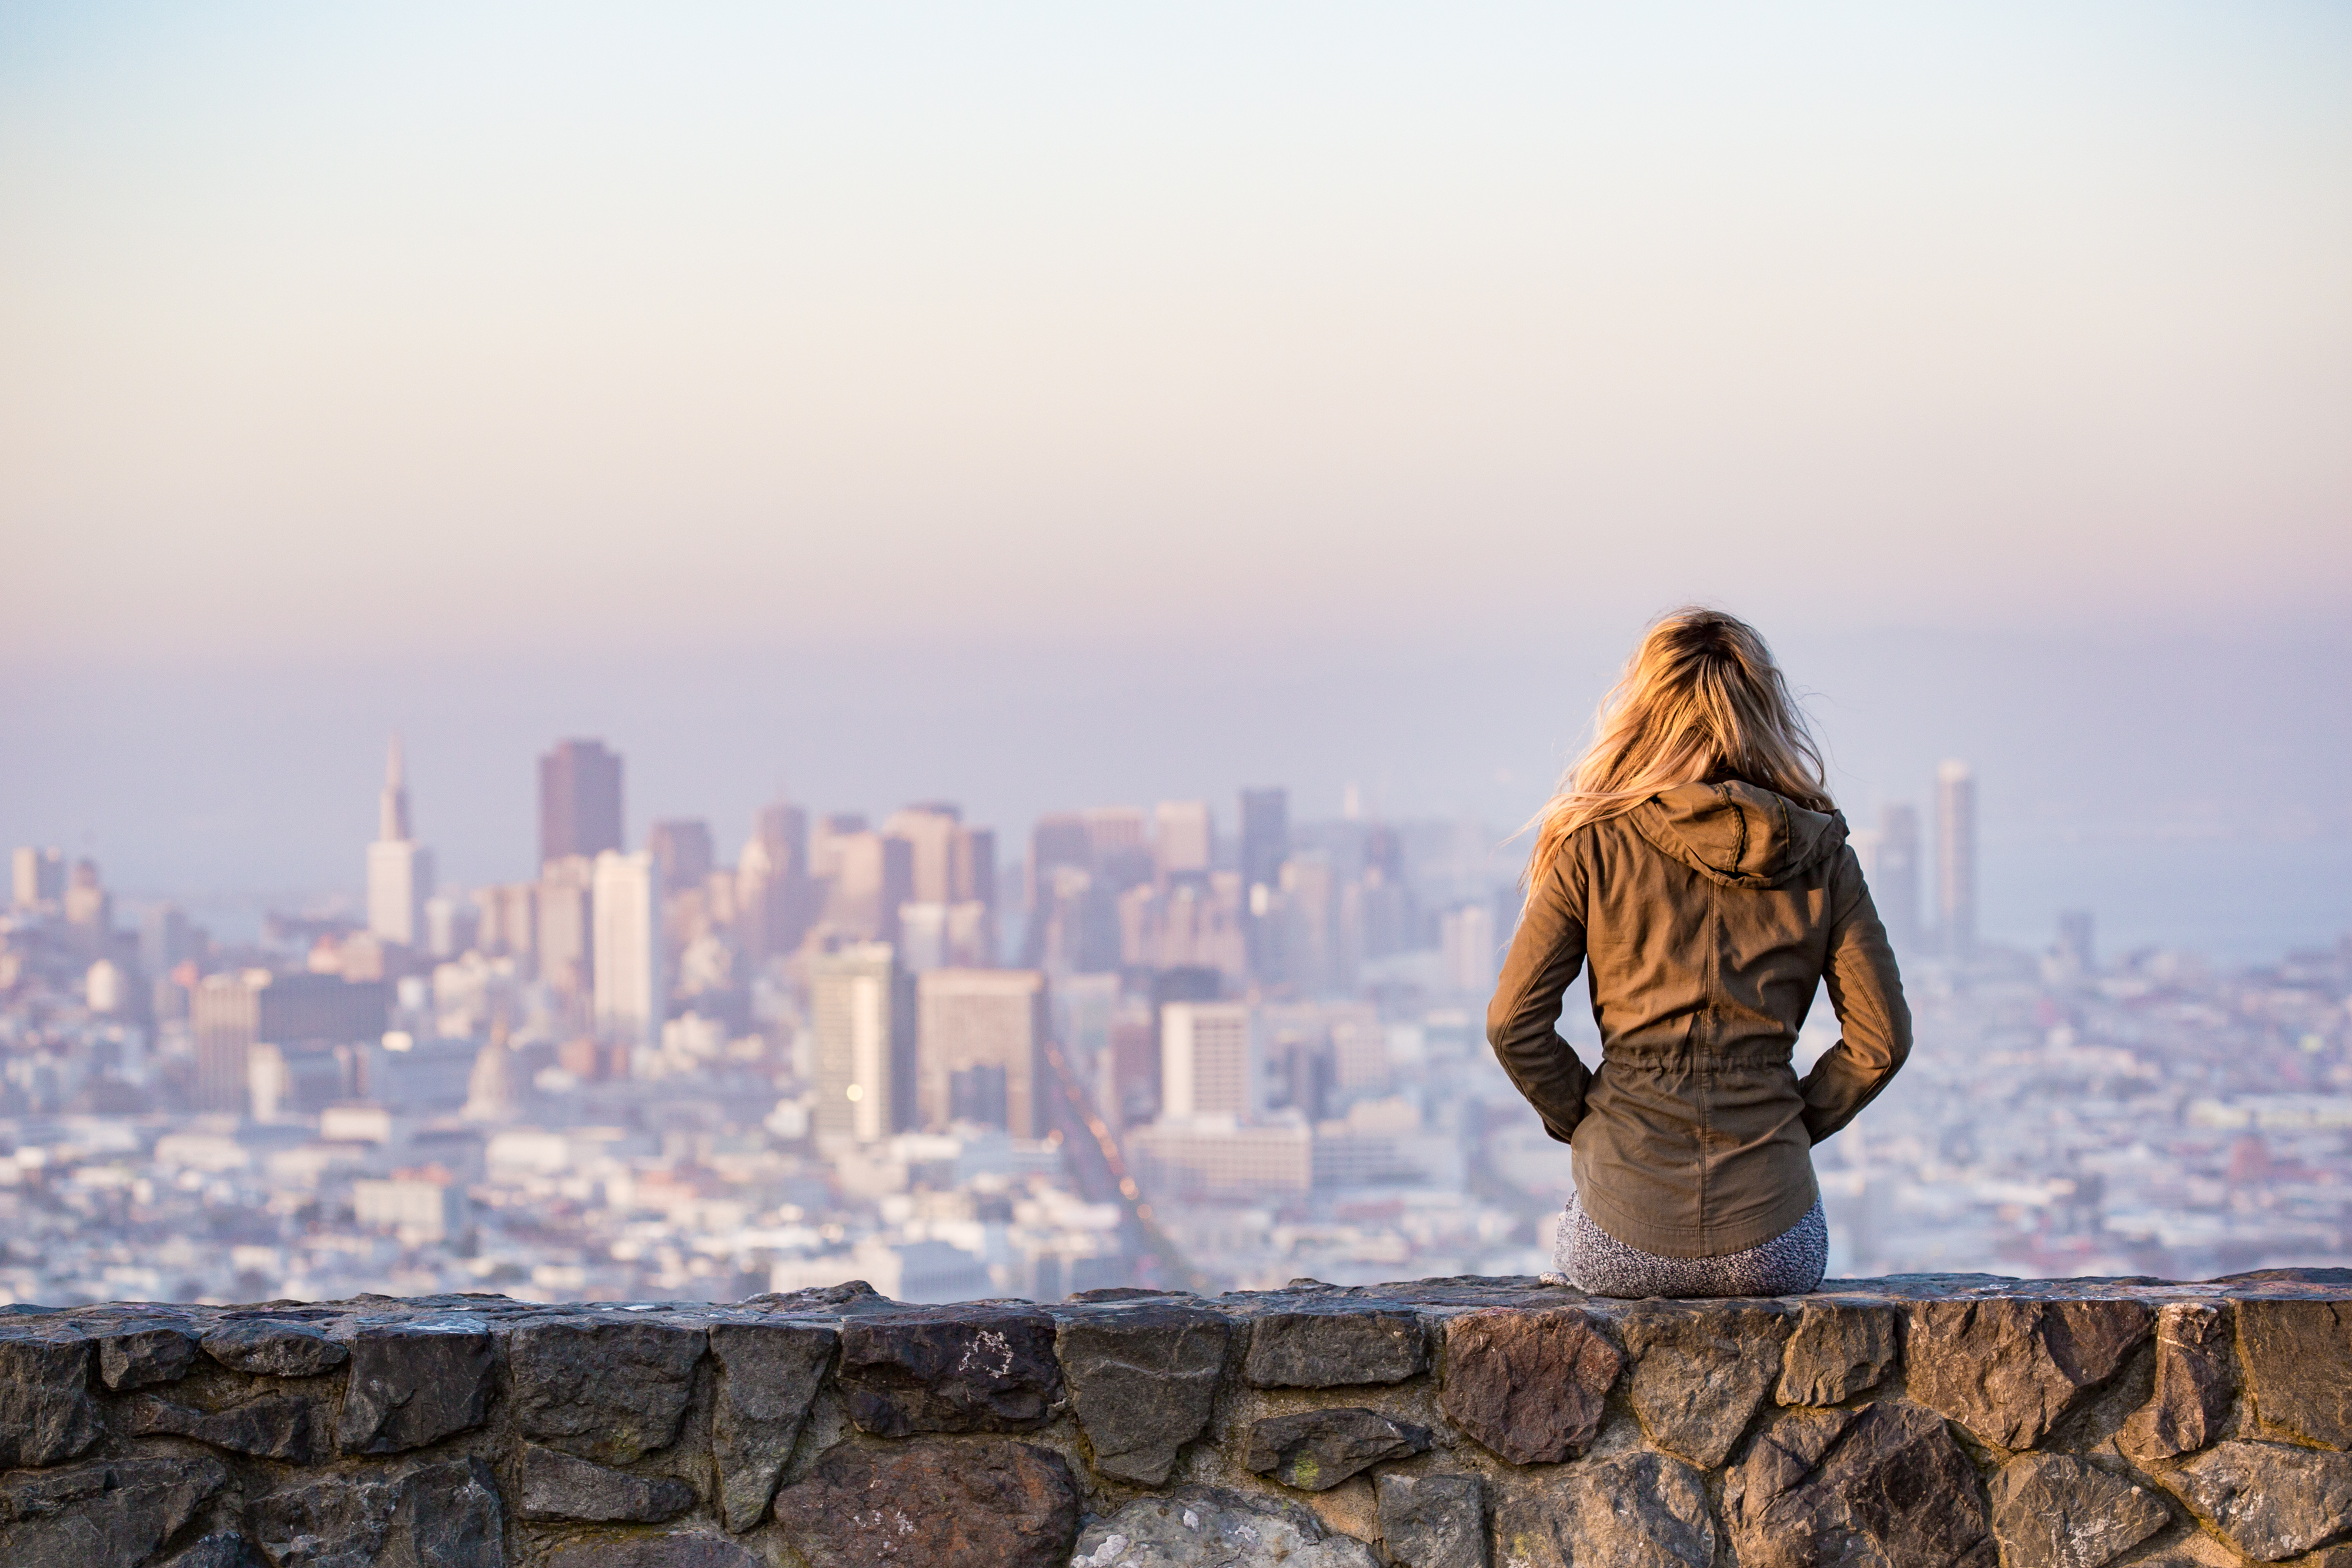 girl-in-coat-sits-on-stone-wall-with-city-view-in-the-distance